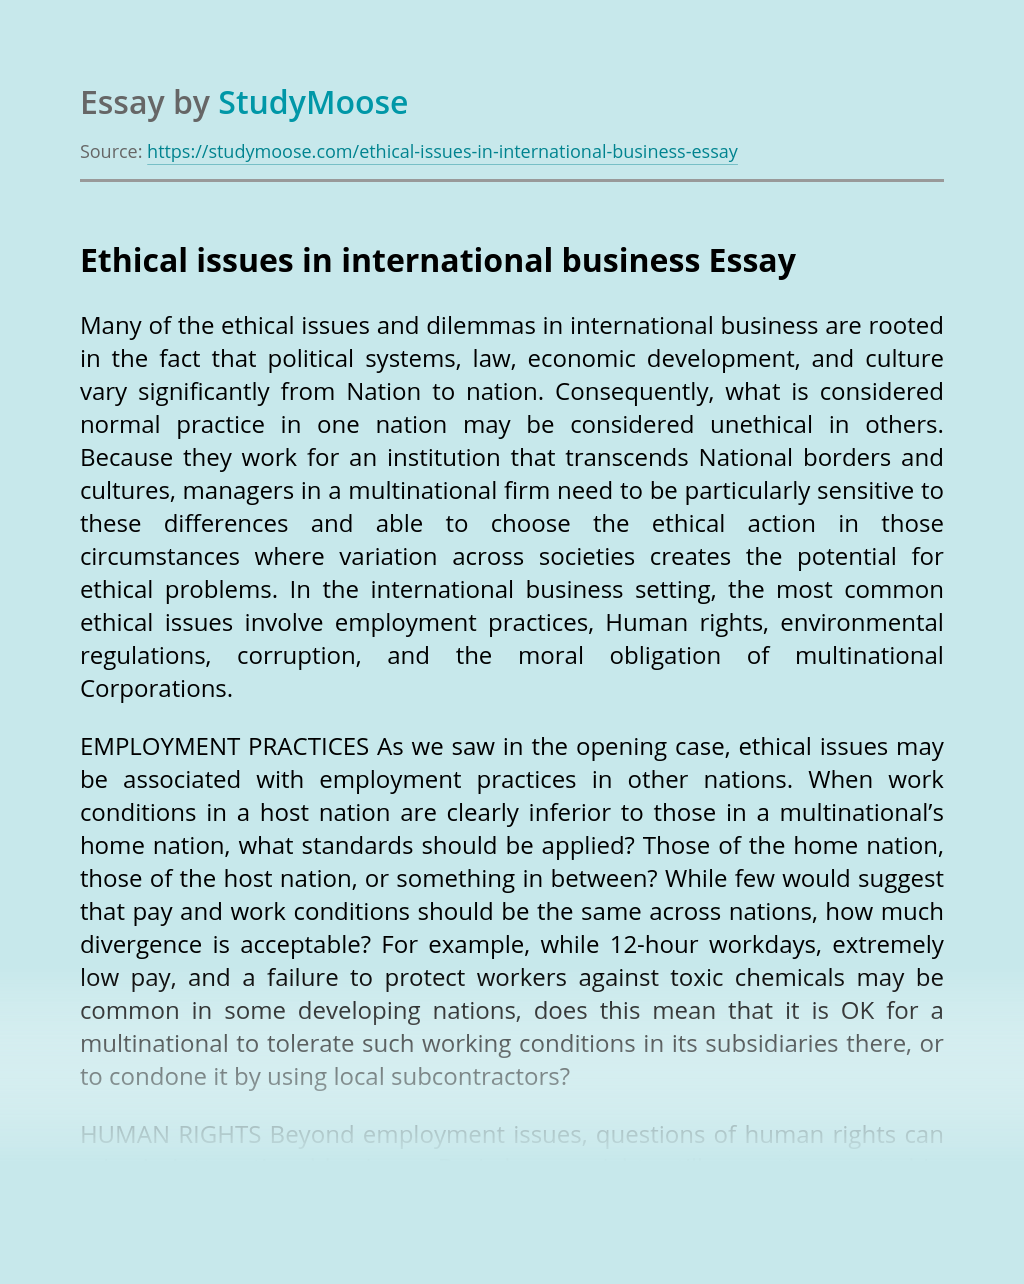 Ethical issues in international business